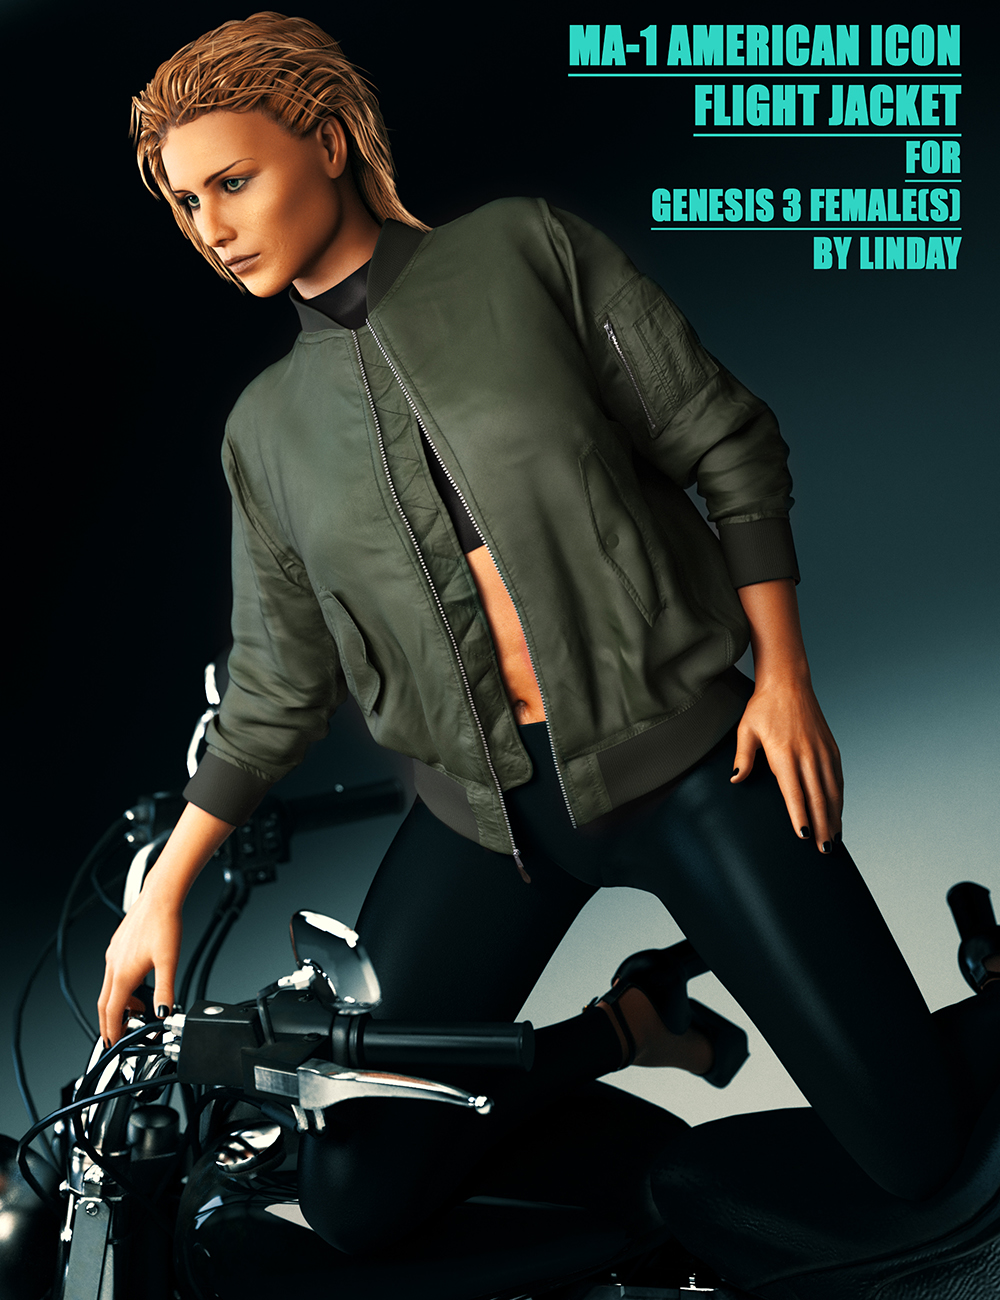 MA-1 Flight Jacket for Genesis 3 Female(s) by: Linday, 3D Models by Daz 3D